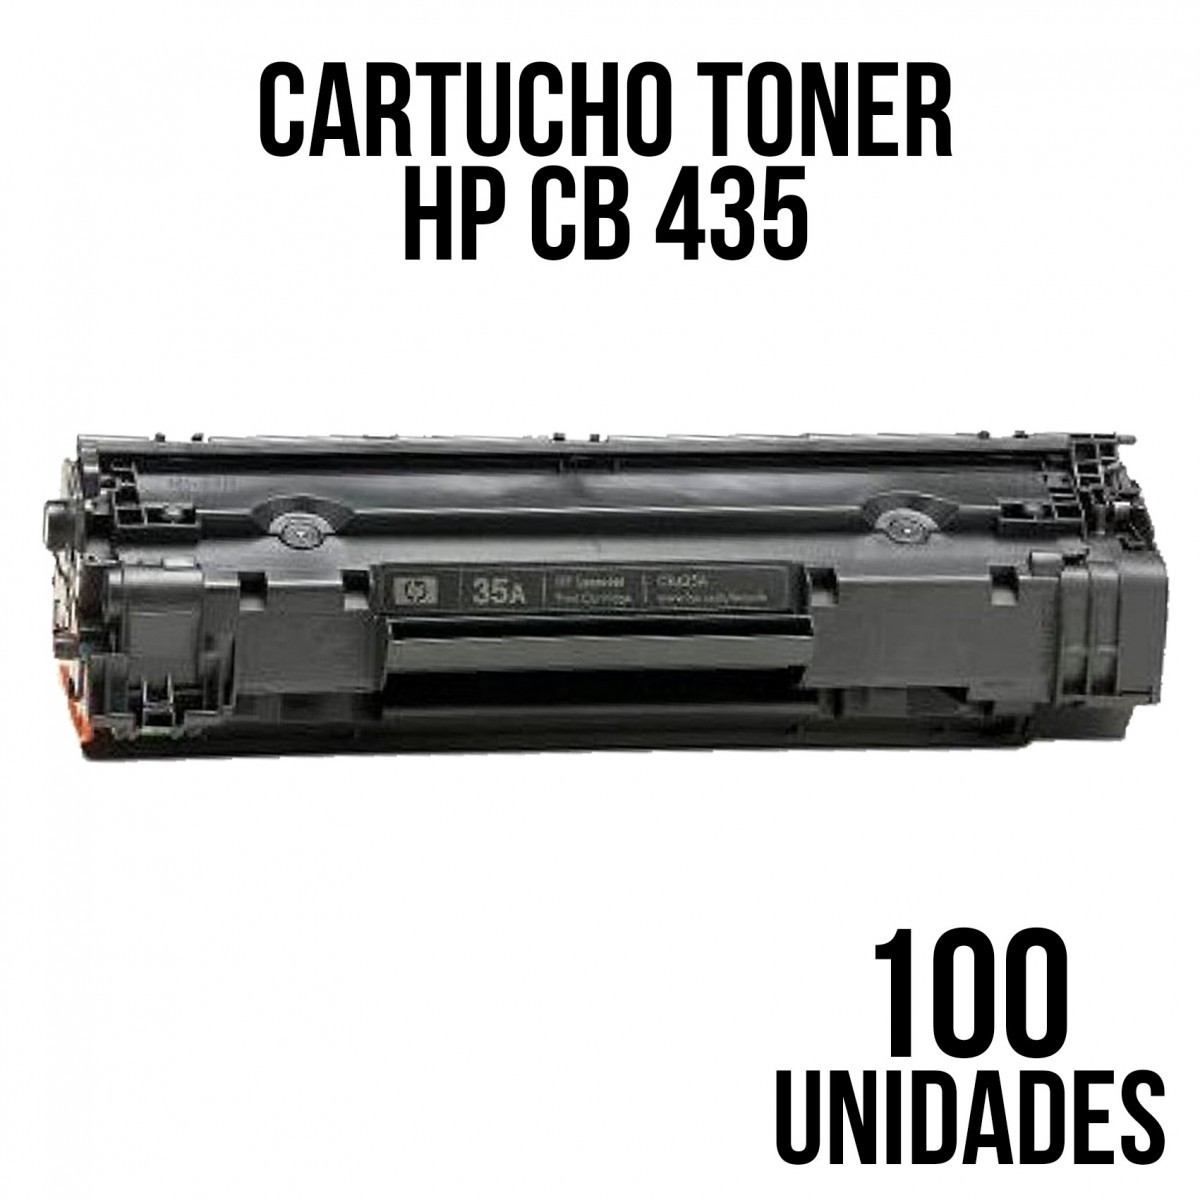 TONER HP 285 / 85a / CE285 / 278 / 85 / 436 / 435/ P1005 / 1006 / 1505 / 1505N / M1552N / COMPATIVEL COM 100 UNIDADES  COMPATIVEL